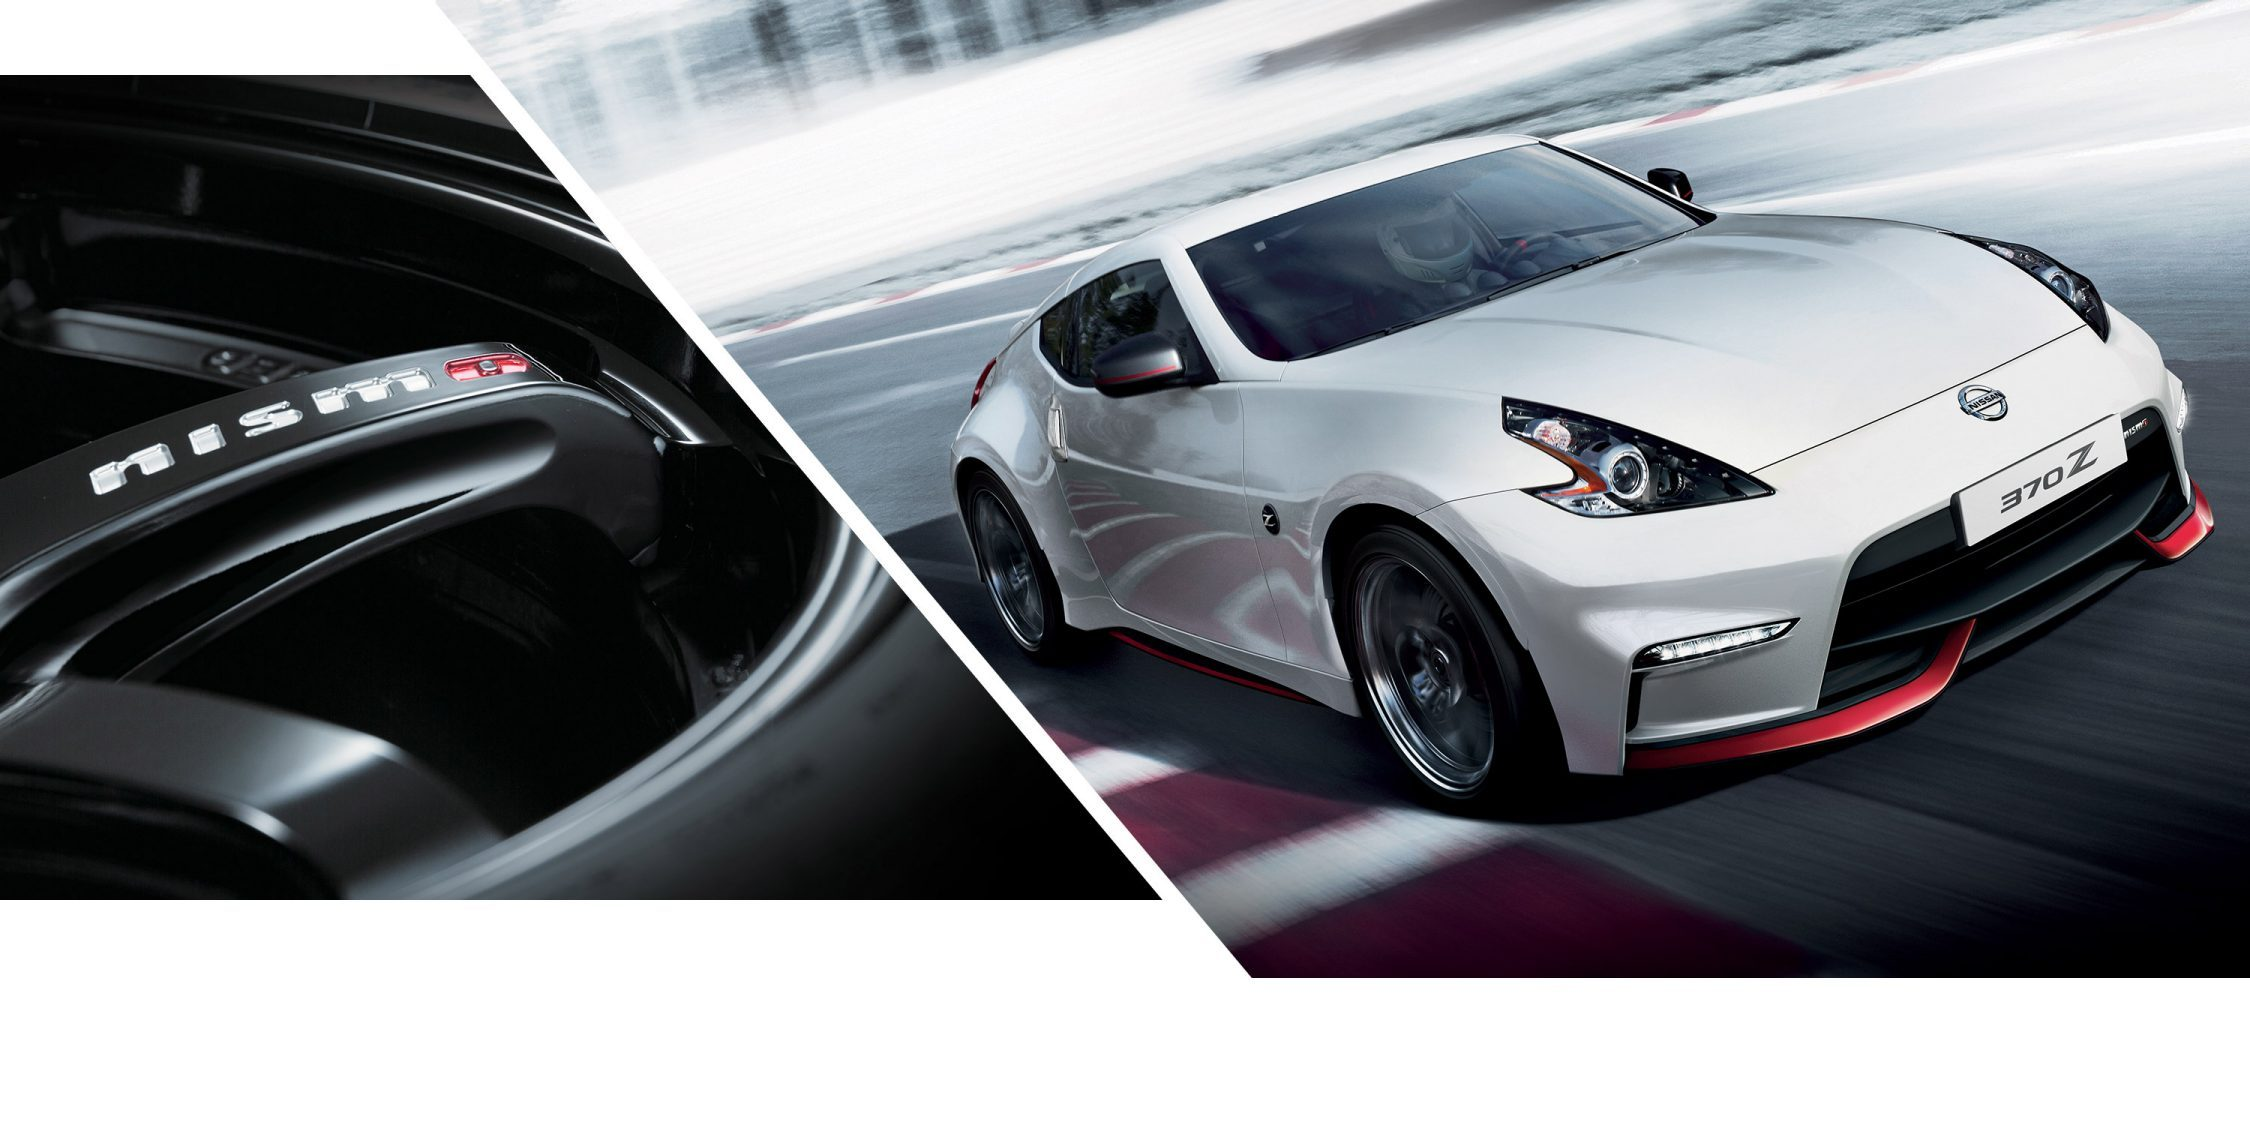 NISMO wheel and 370Z NISMO on racetrack